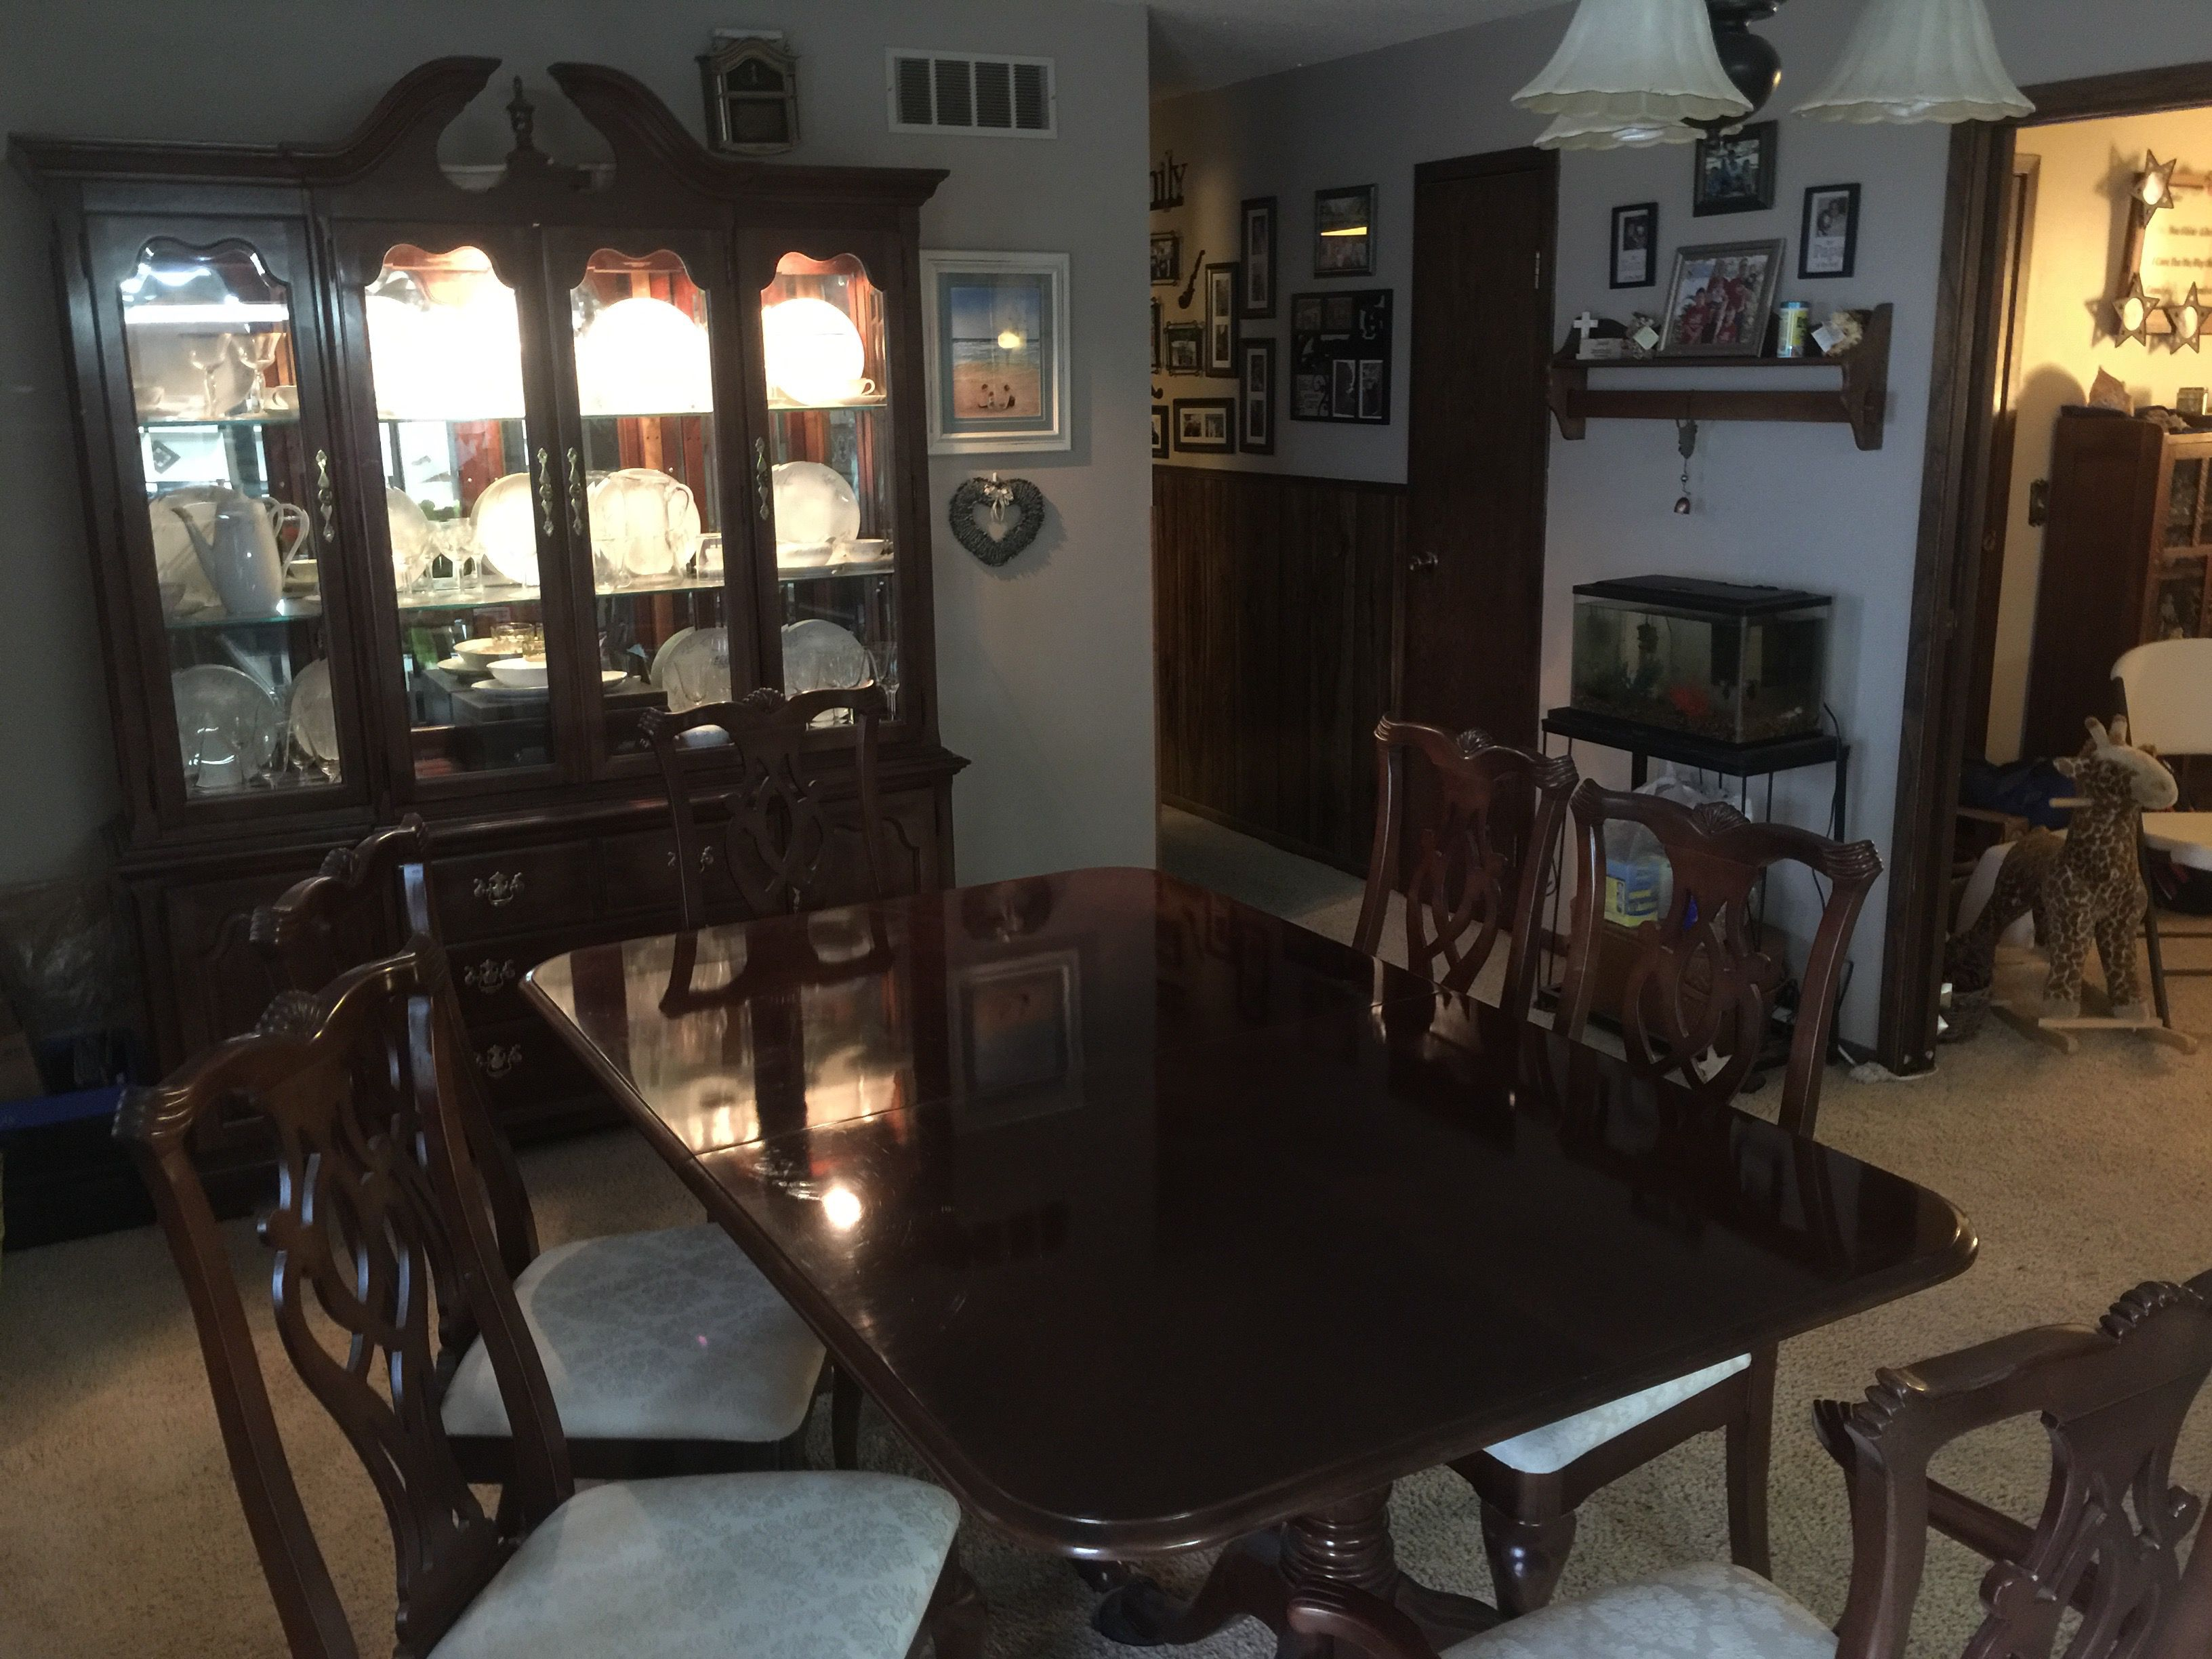 Thomasville Cherry Hutch And Dining Room Table With Chairs Image 1